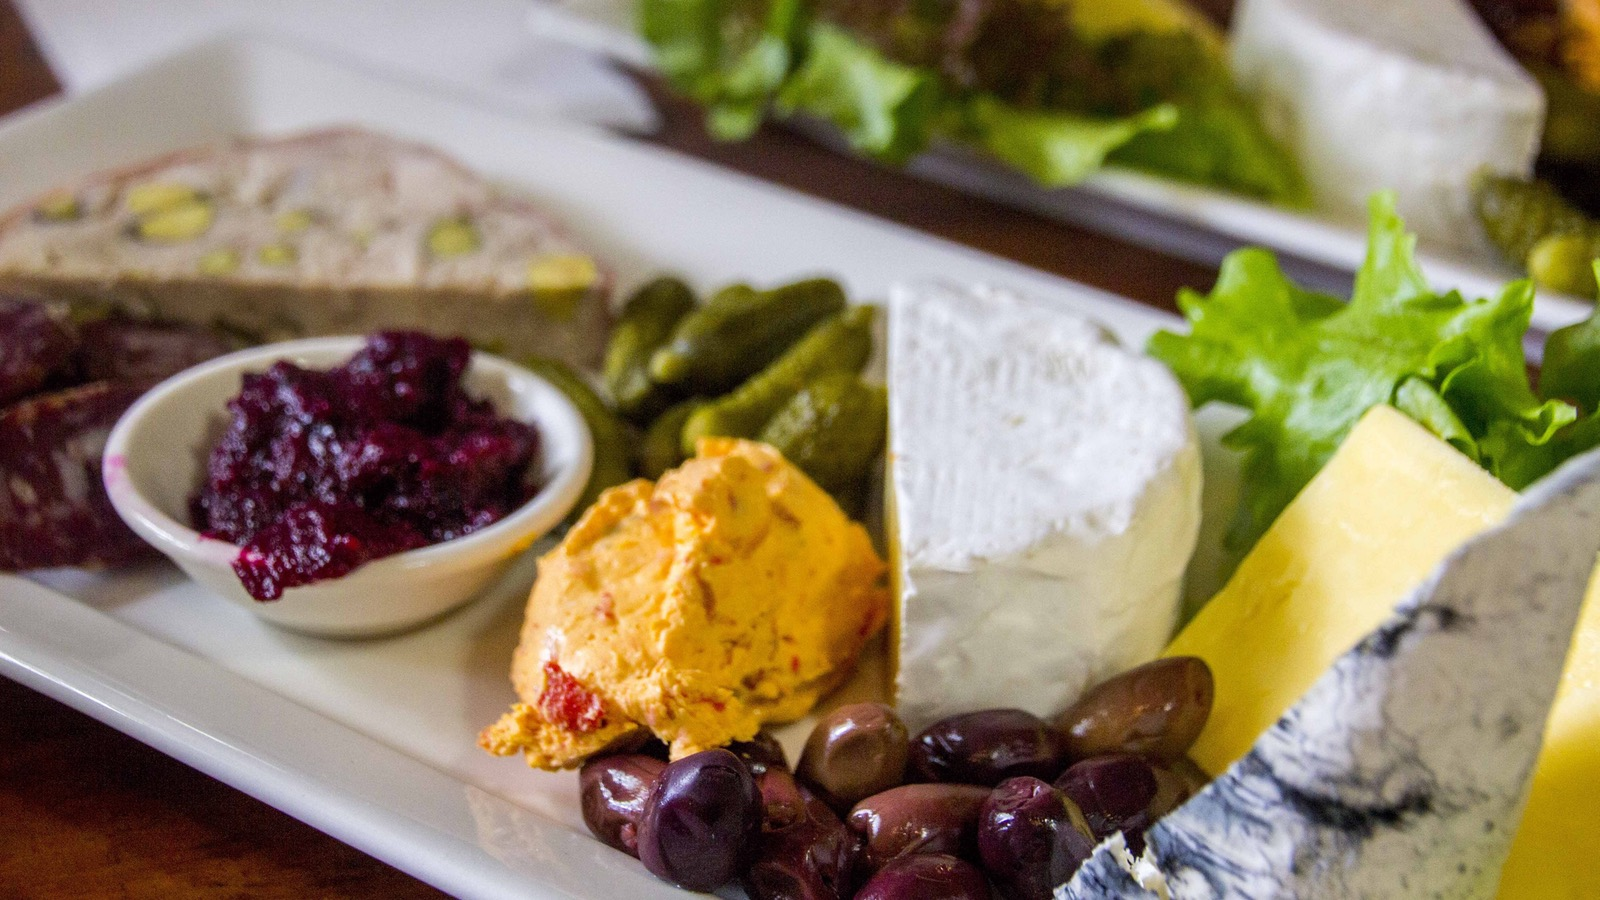 The gourmet platter at Milawa Cheese Factory